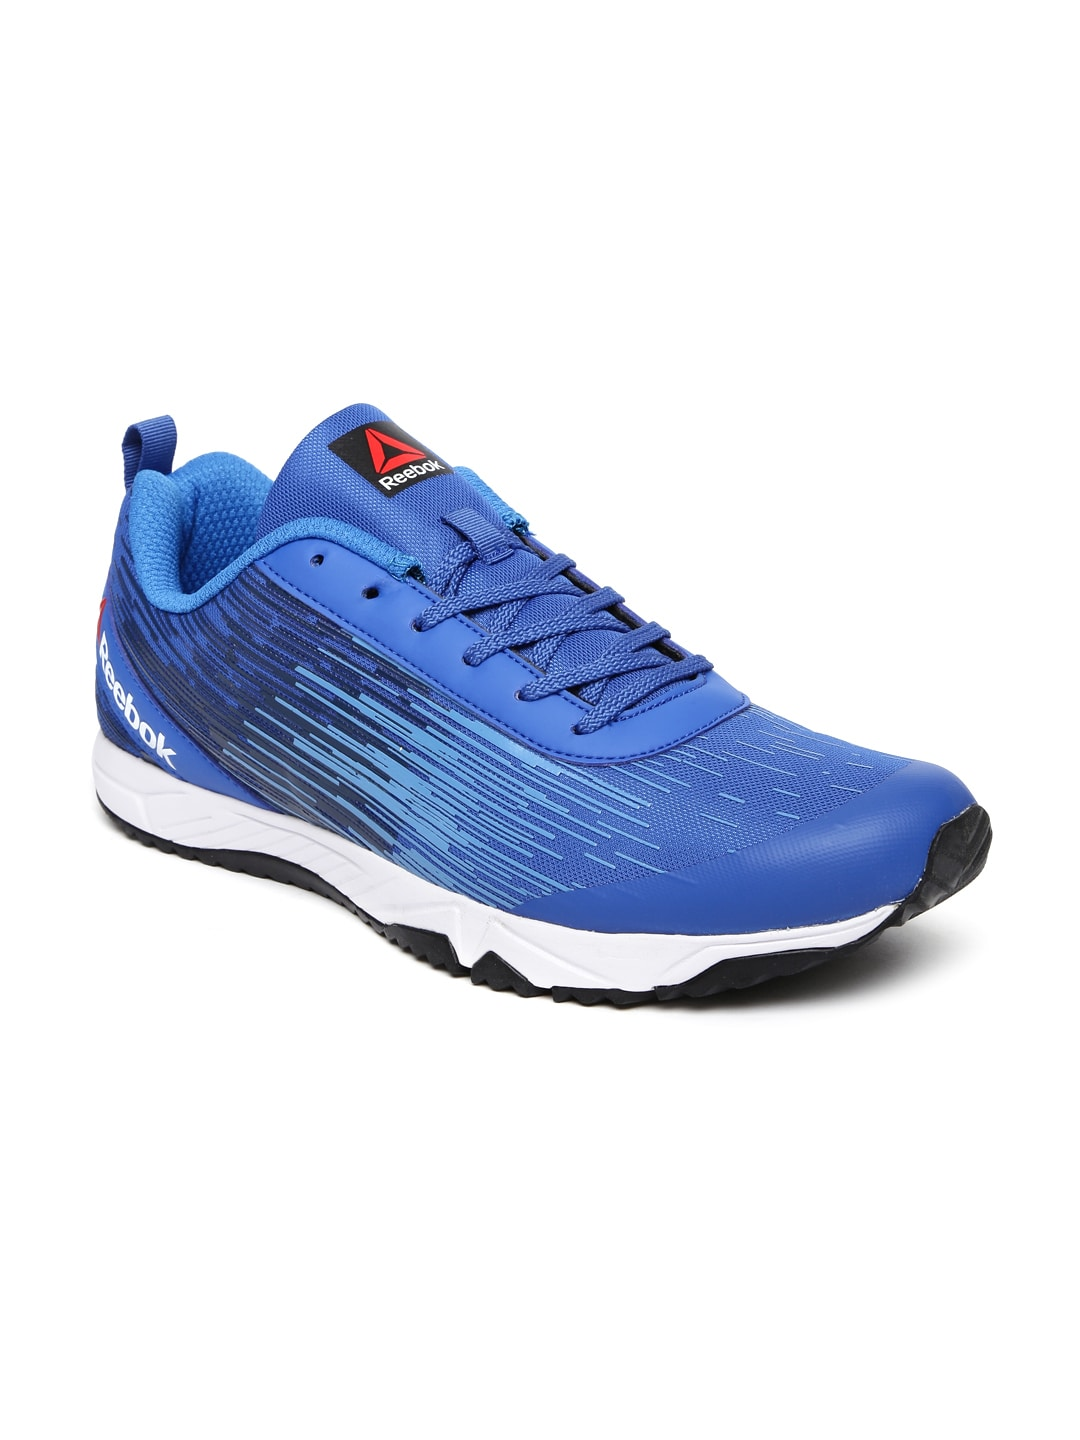 8f0373a4af1b0a Reebok Max Shoes - Buy Reebok Max Shoes online in India